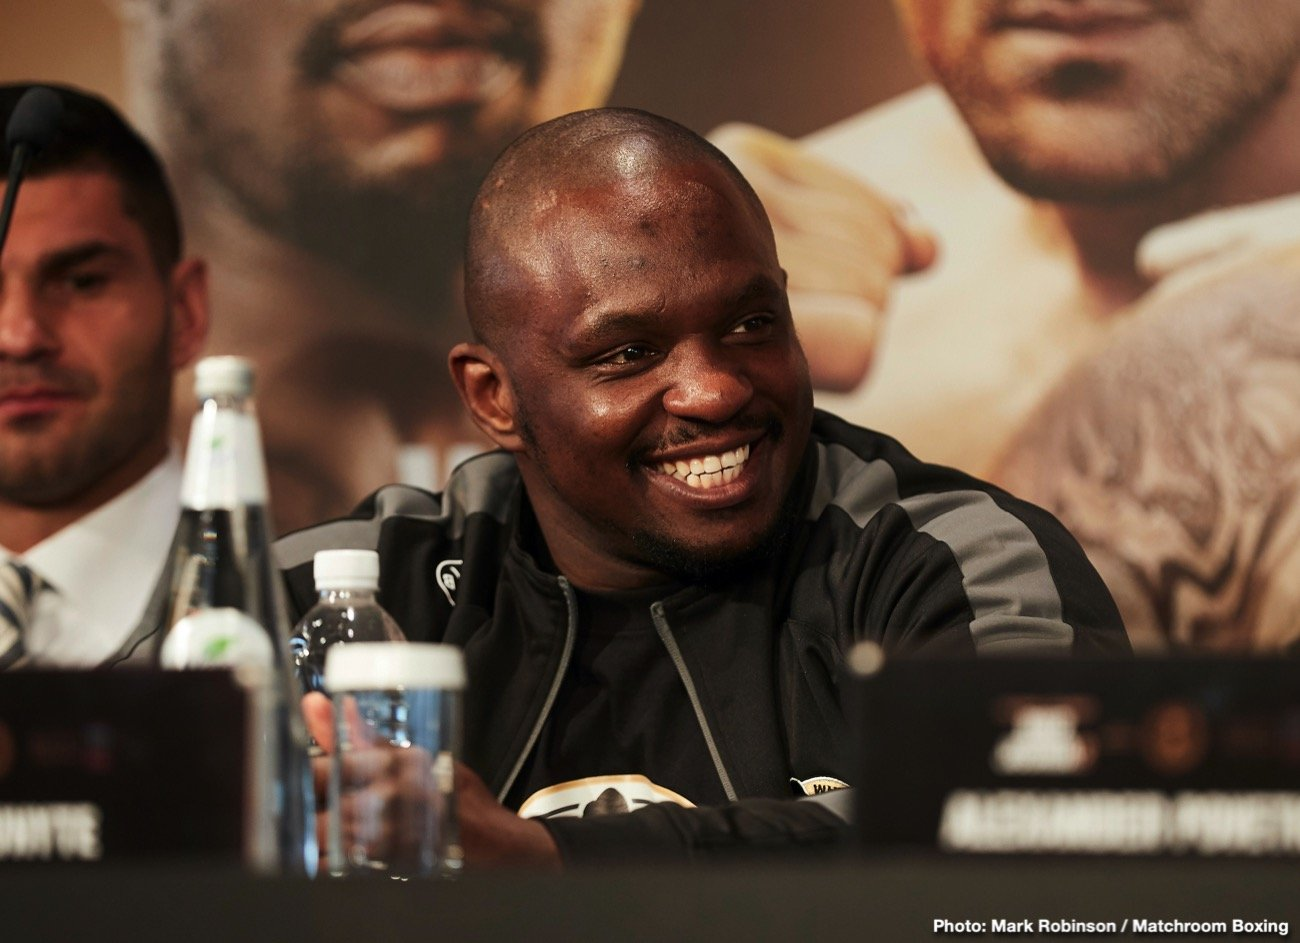 Bob Arum - The WBC could make Dillian Whyte their next email champion if he continues to pursue fighting WBC heavyweight champion Tyson Fury this year, according to Bob Arum.